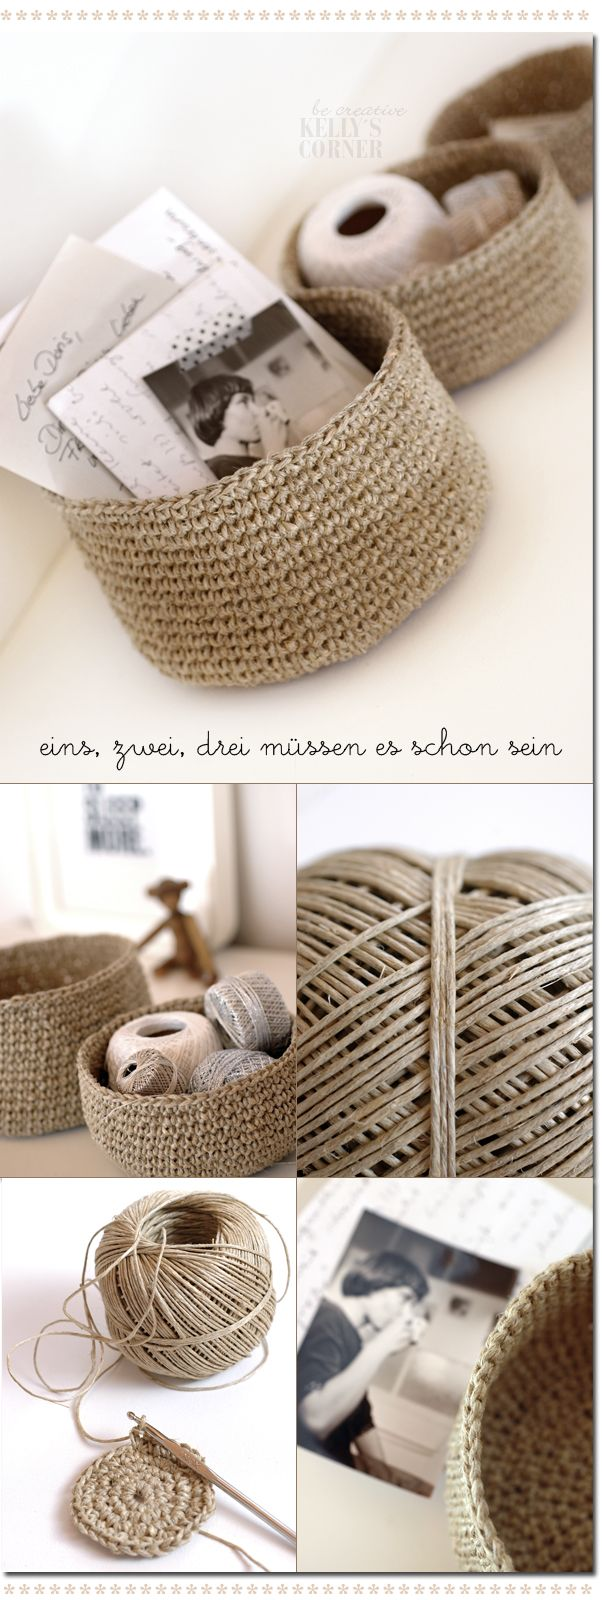 Crocheted storage bowls from packing twine. crochet basket storage yarn